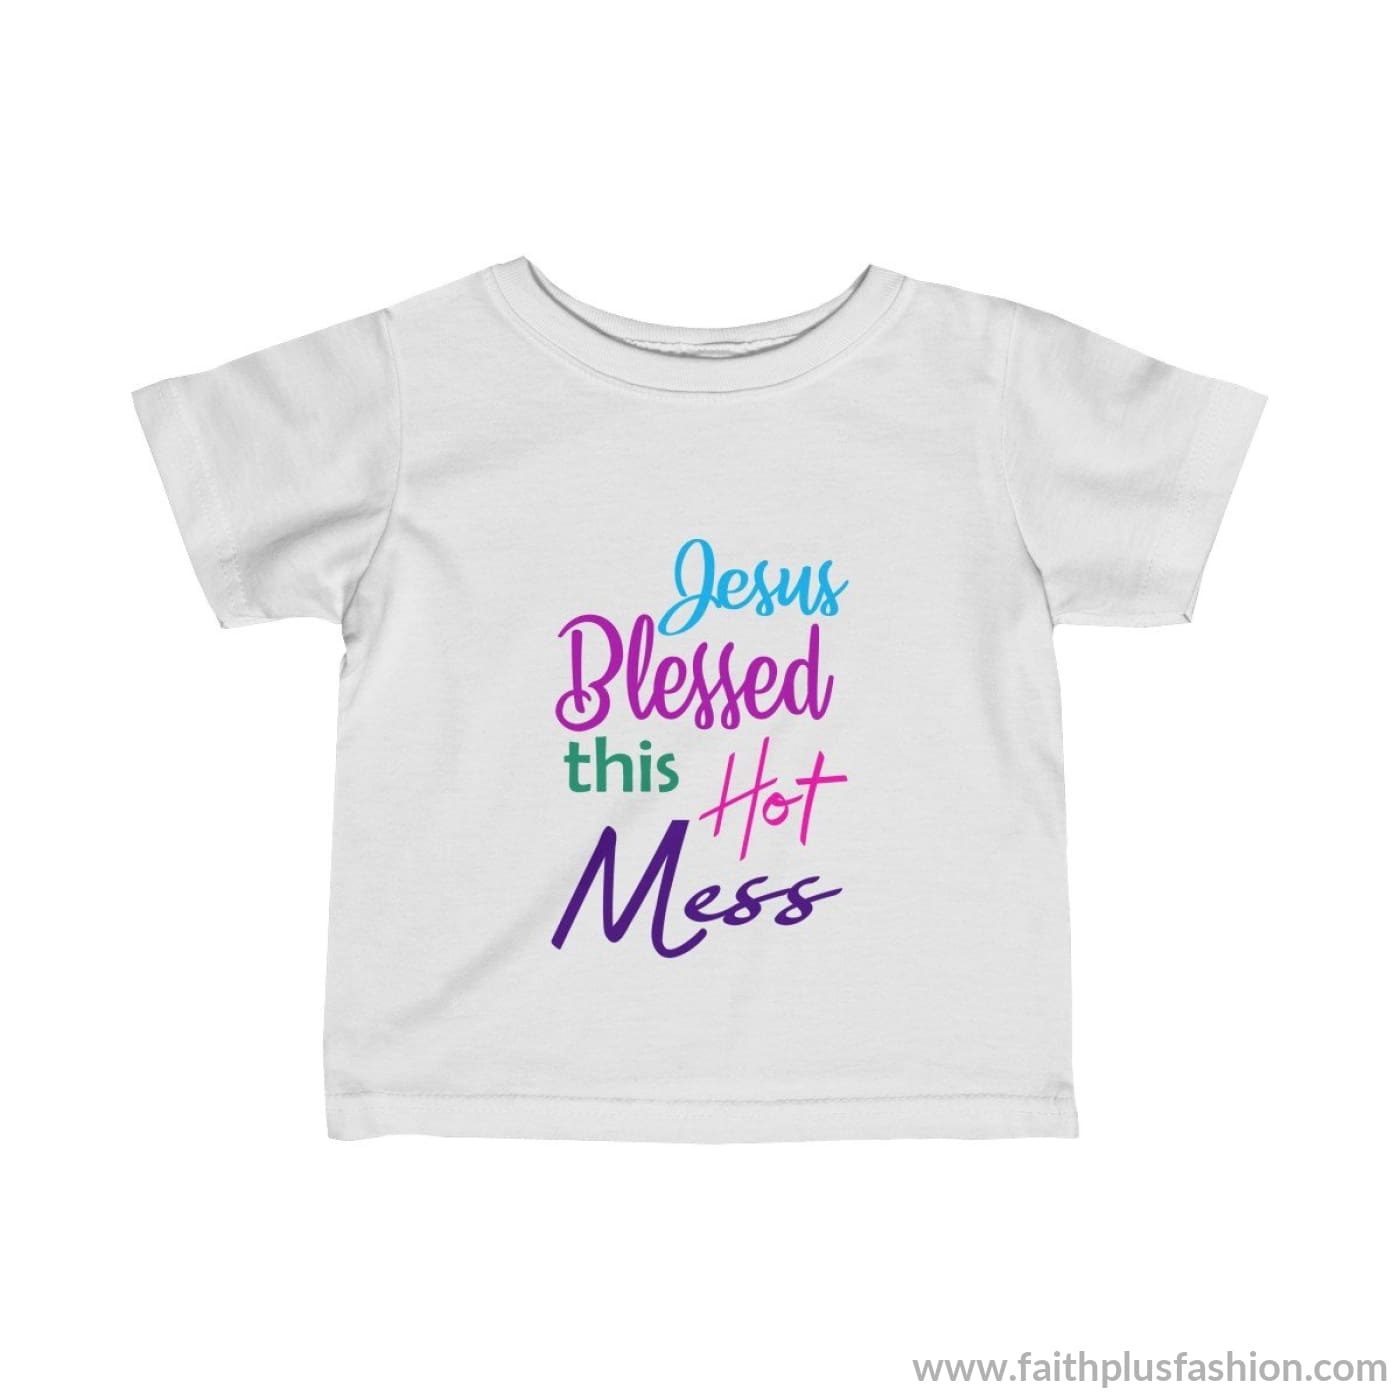 Jesus Blessed This Hot Mess Infant Fine Jersey Tee - White / 18M - Kids Clothes